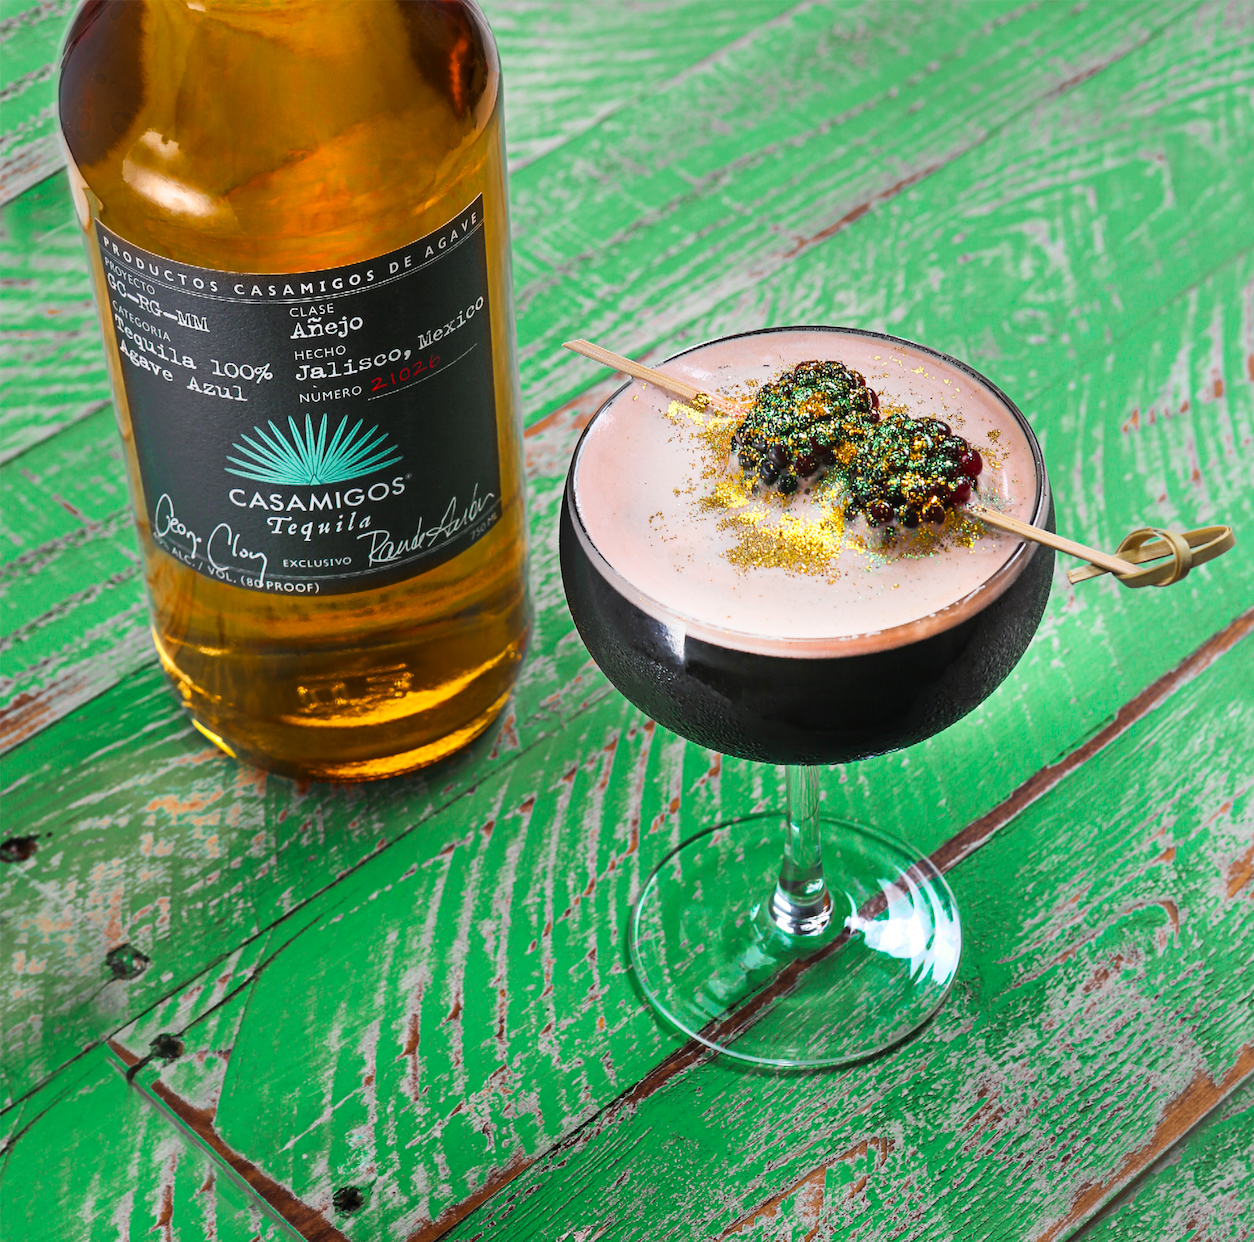 The Saint Casa Cocktail with Casamigos Tequila